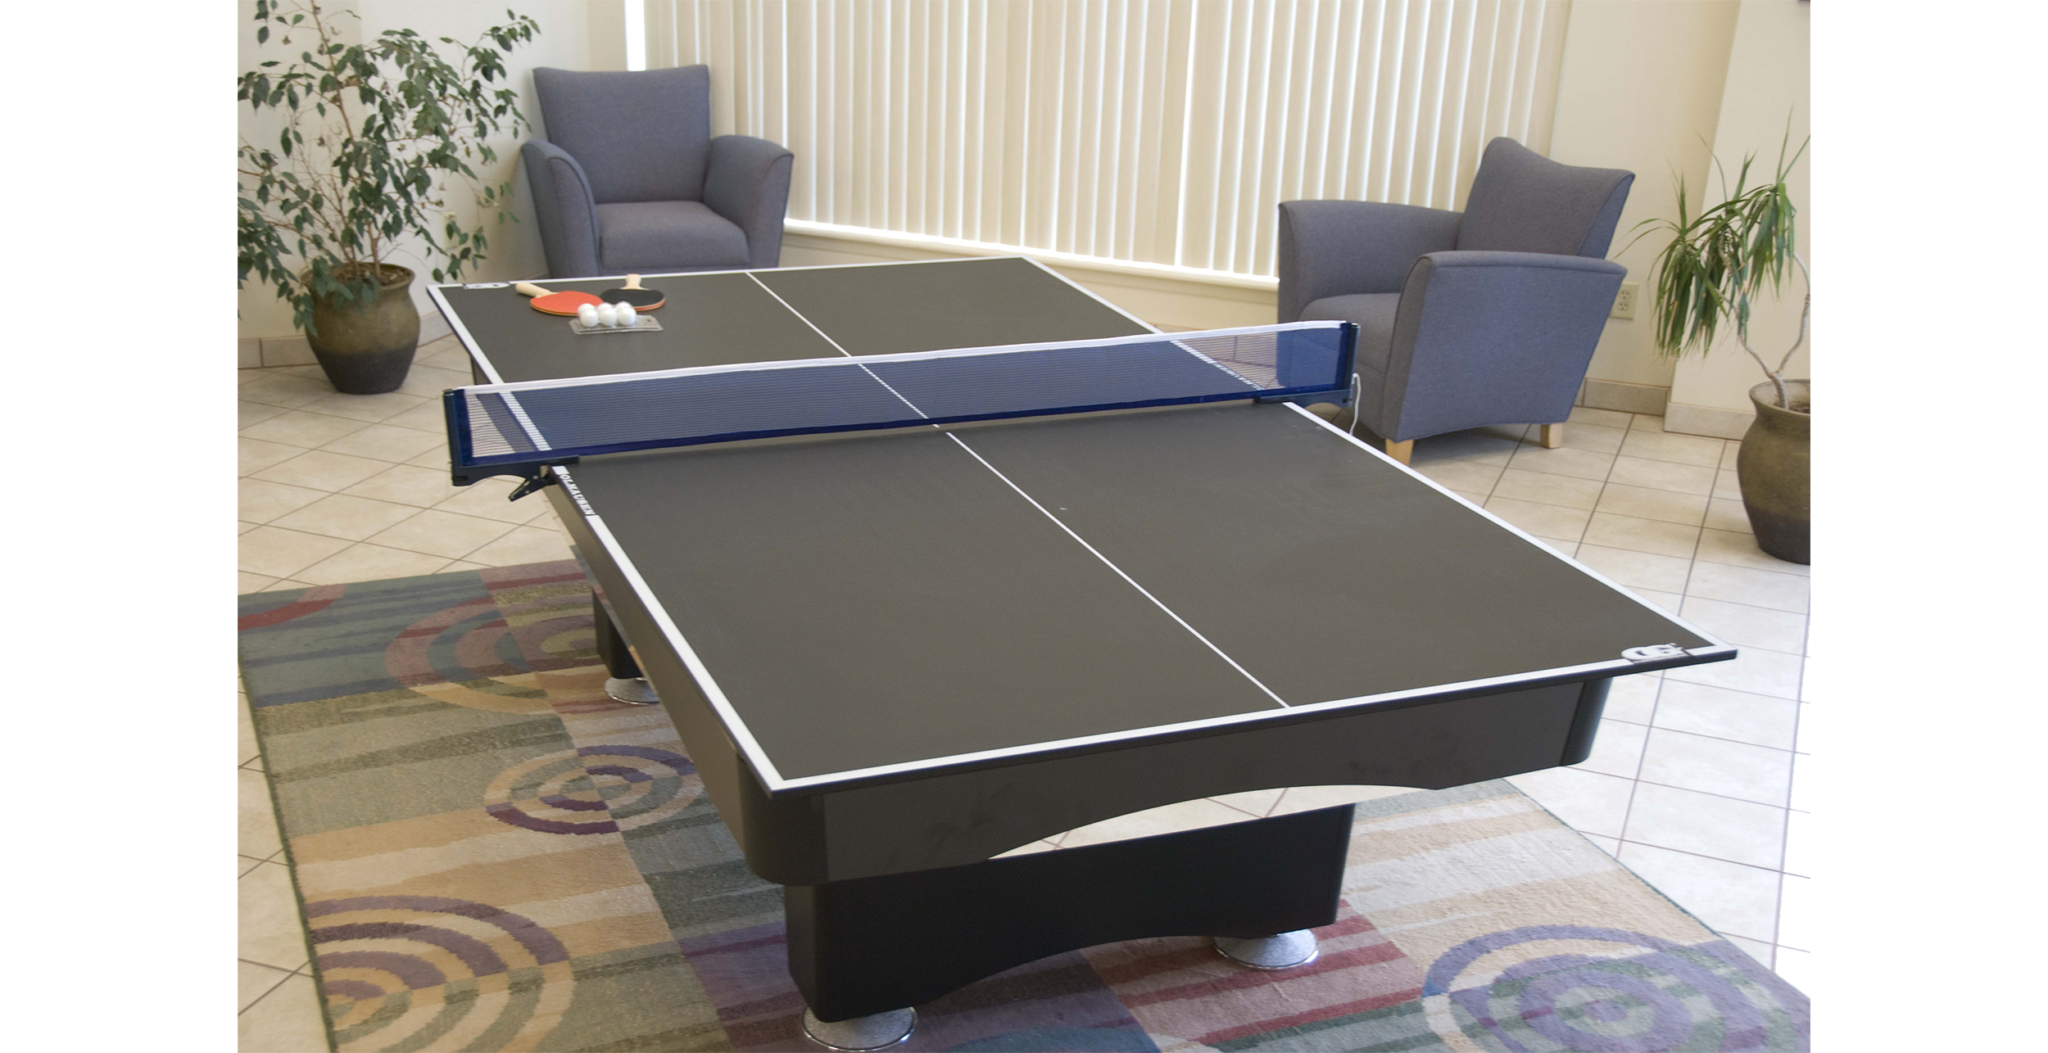 Olhausen Ping Pong Table Top Conversion